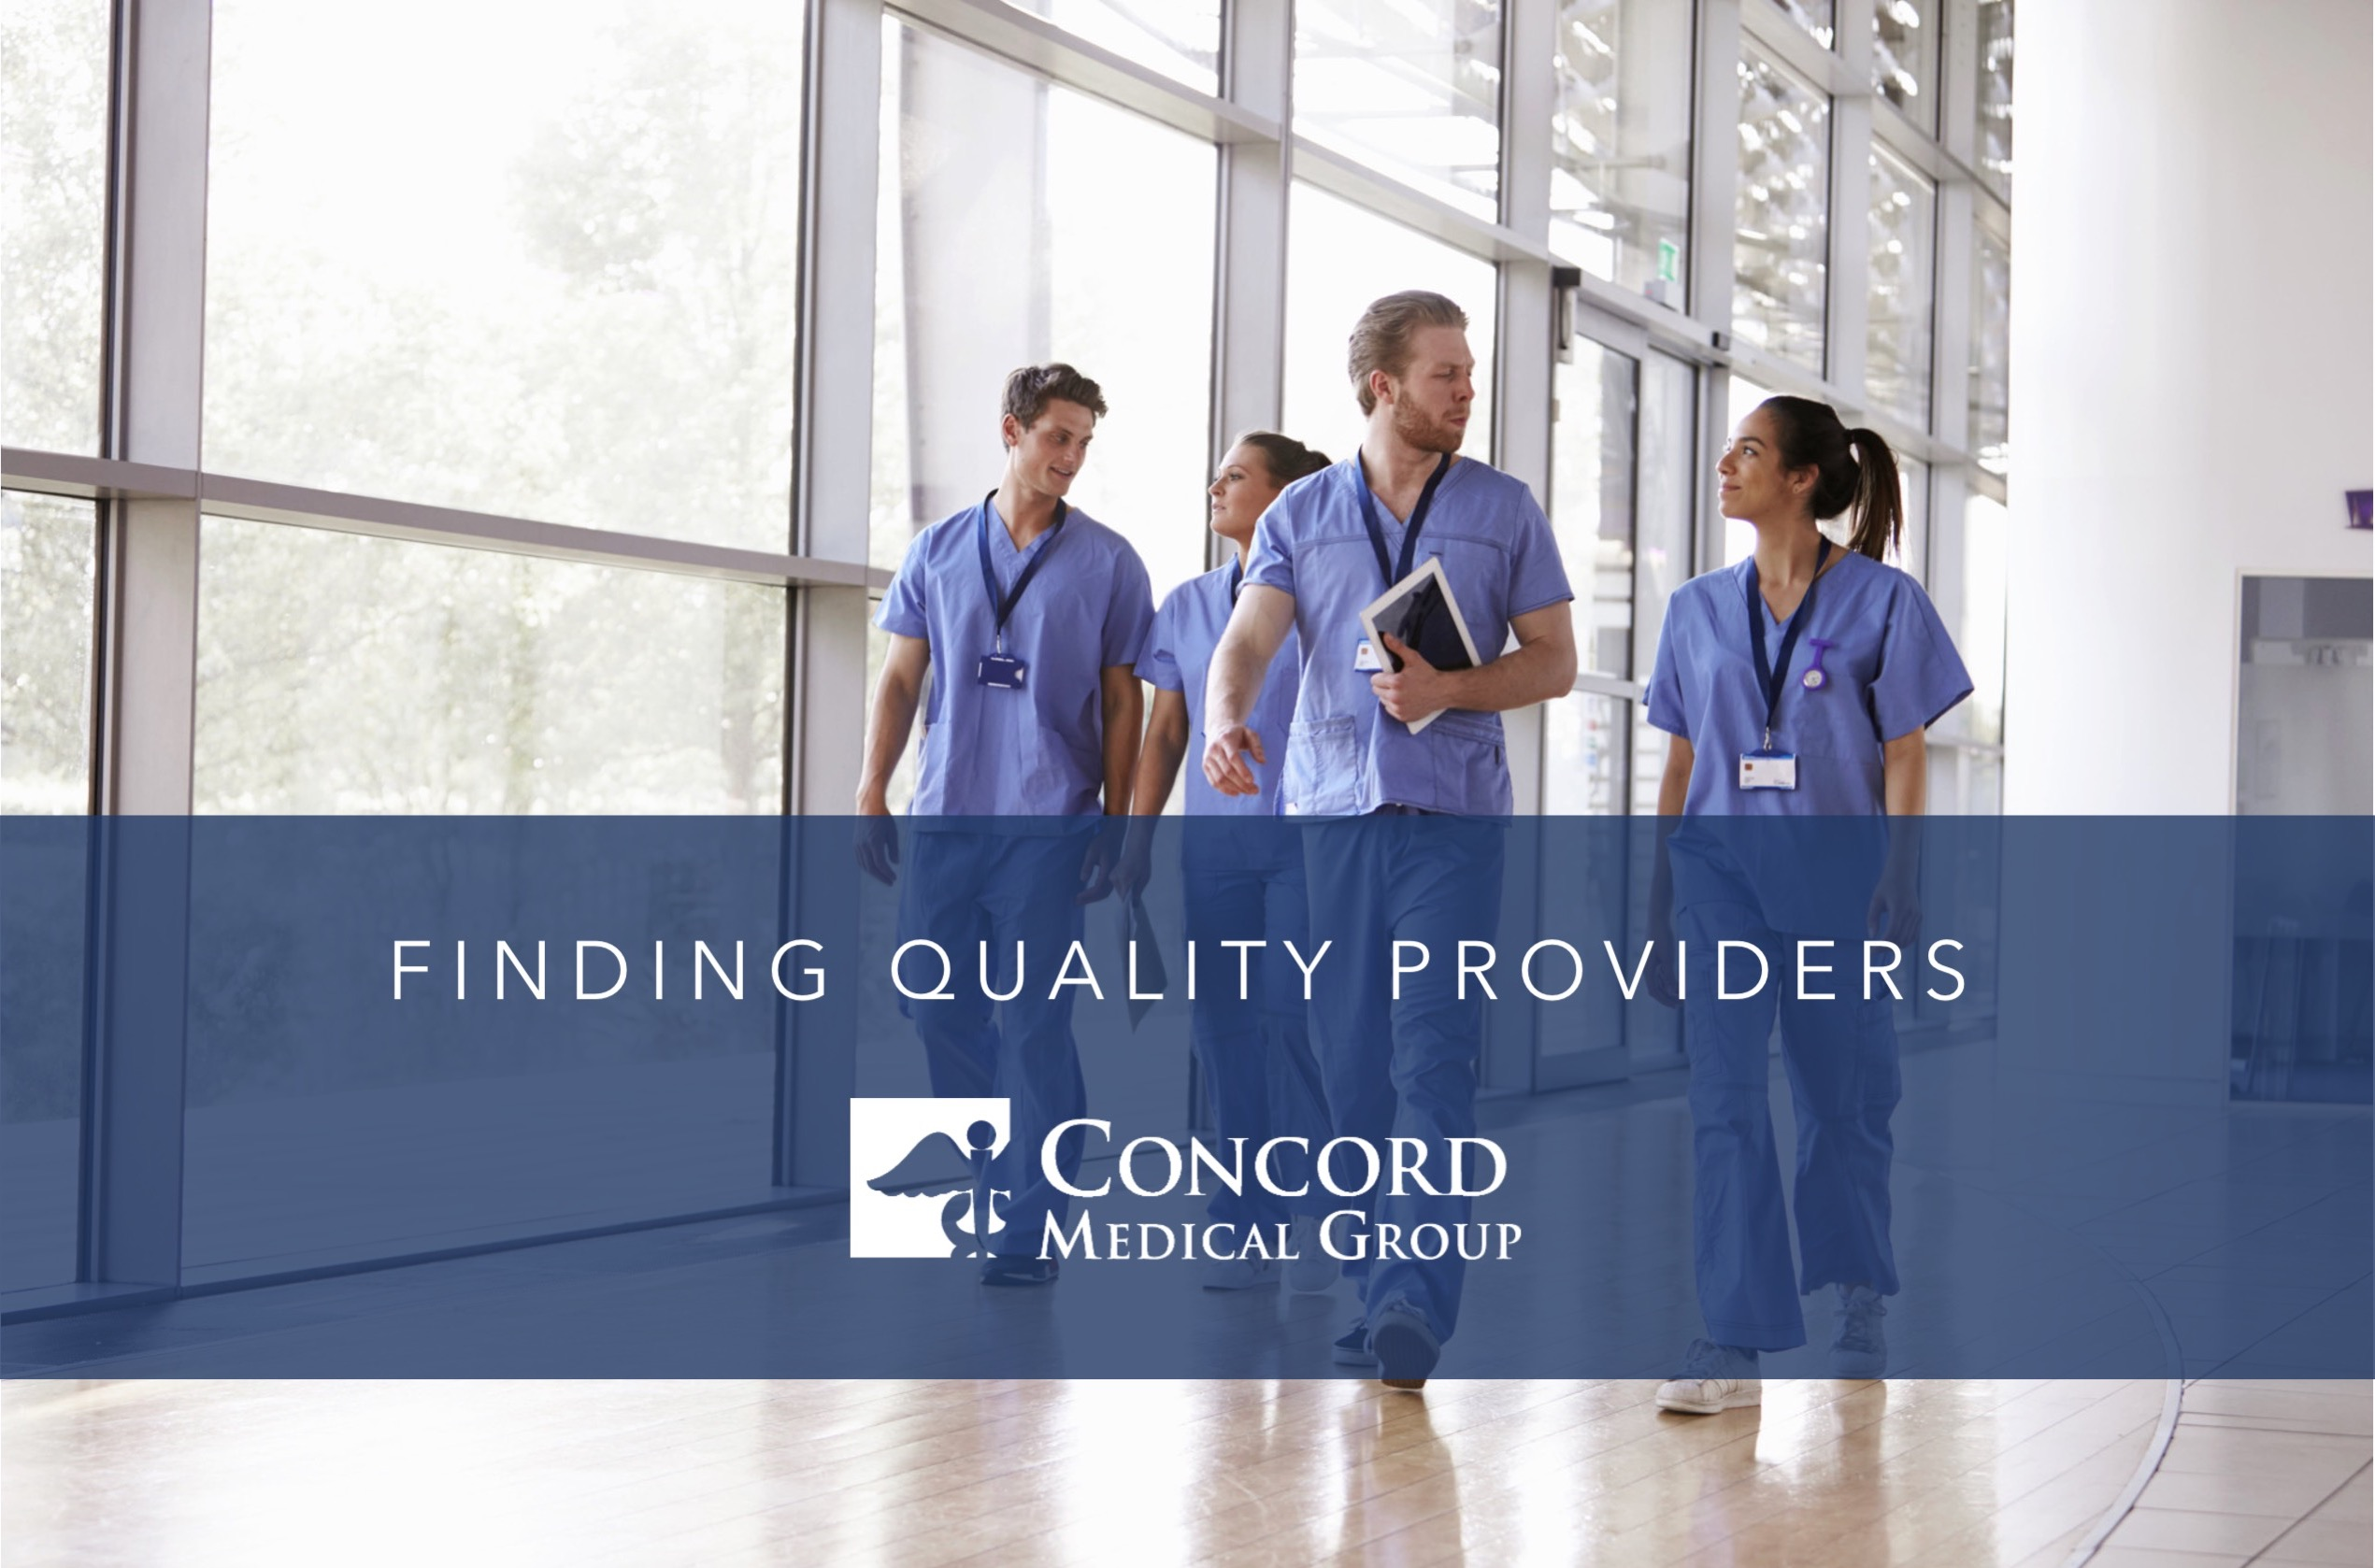 Finding Quality Providers